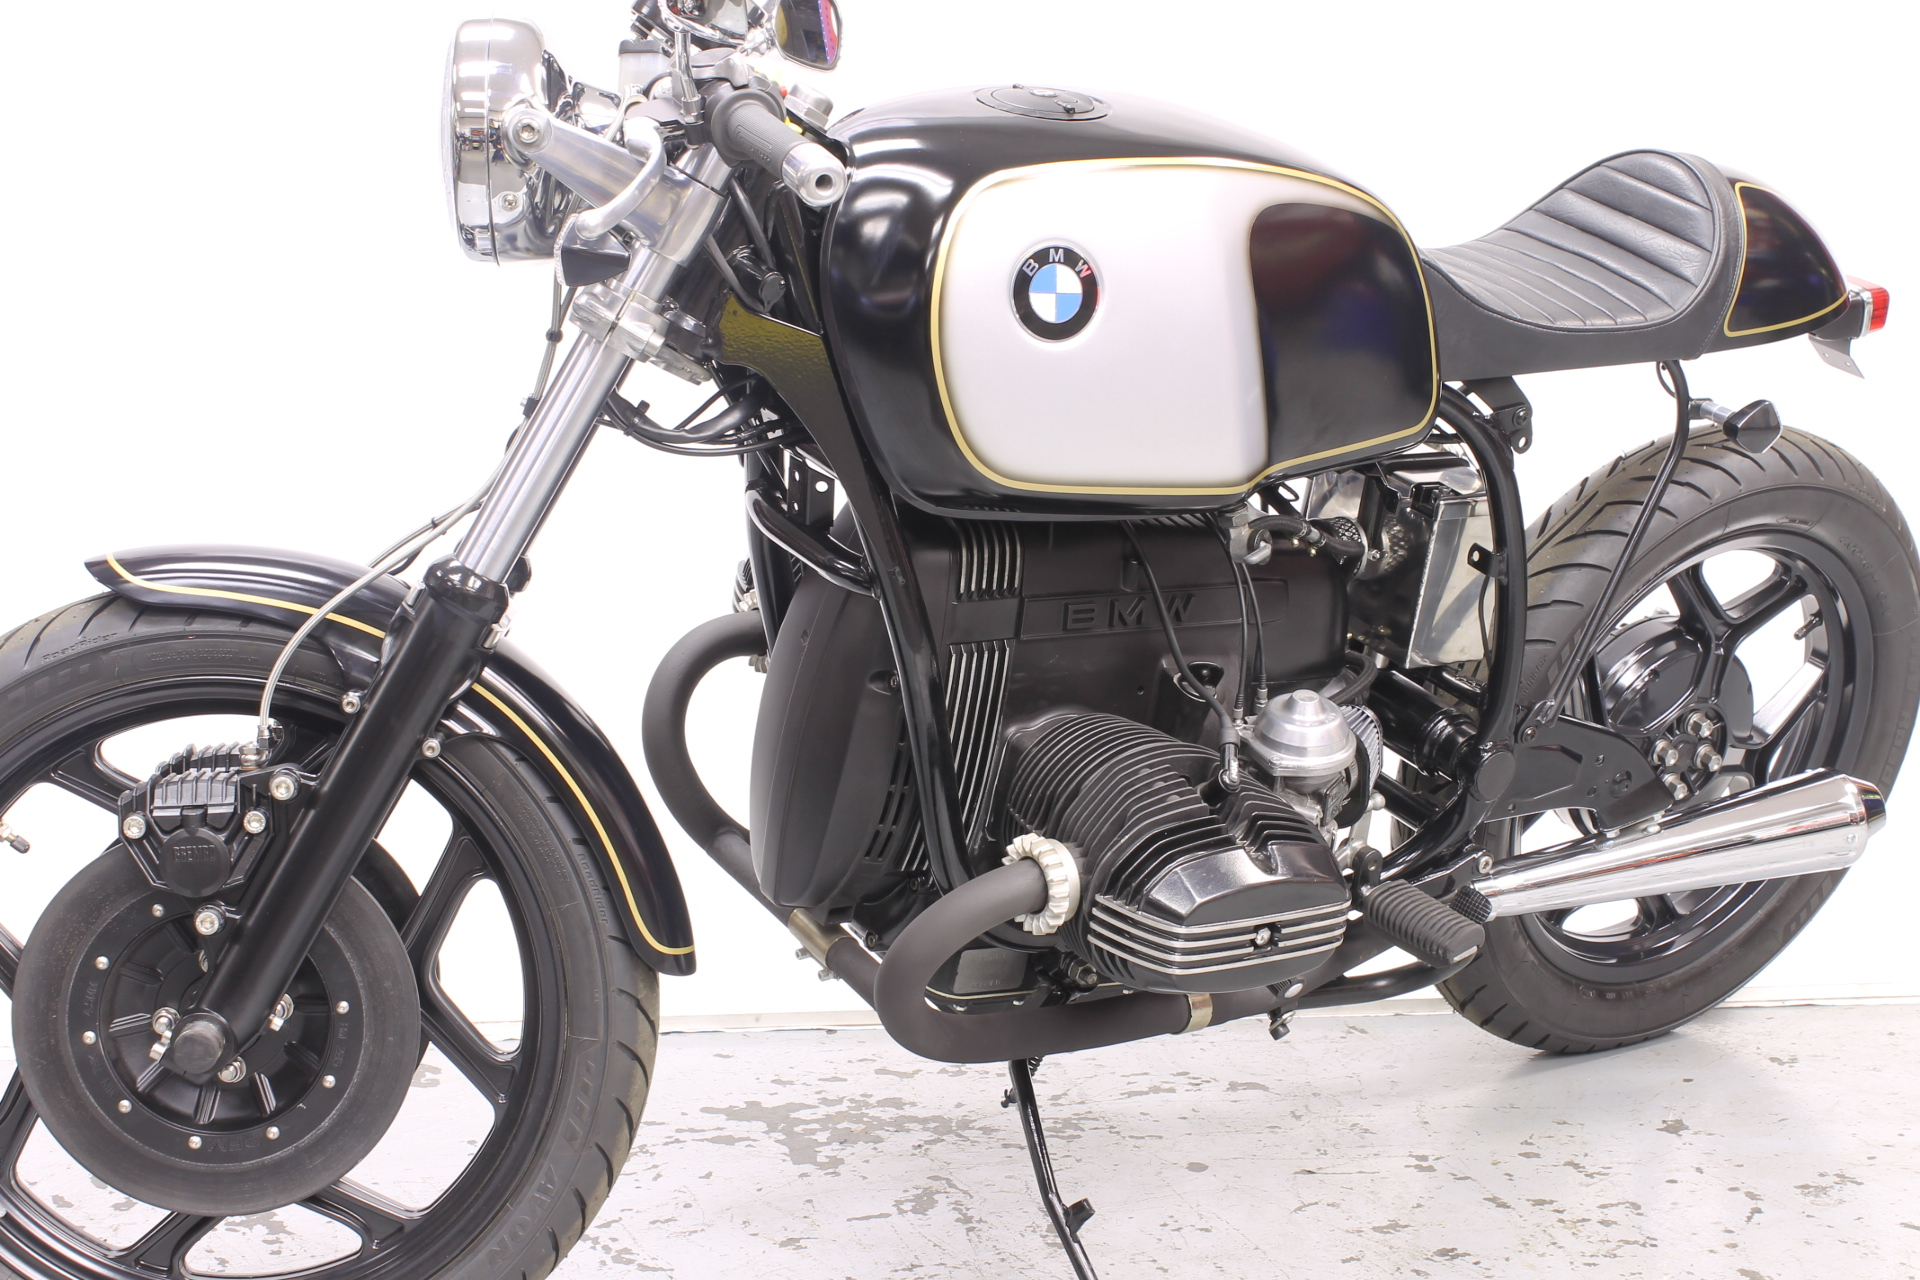 Project Bmw R80rt Cafe Racer Moto Pitstop